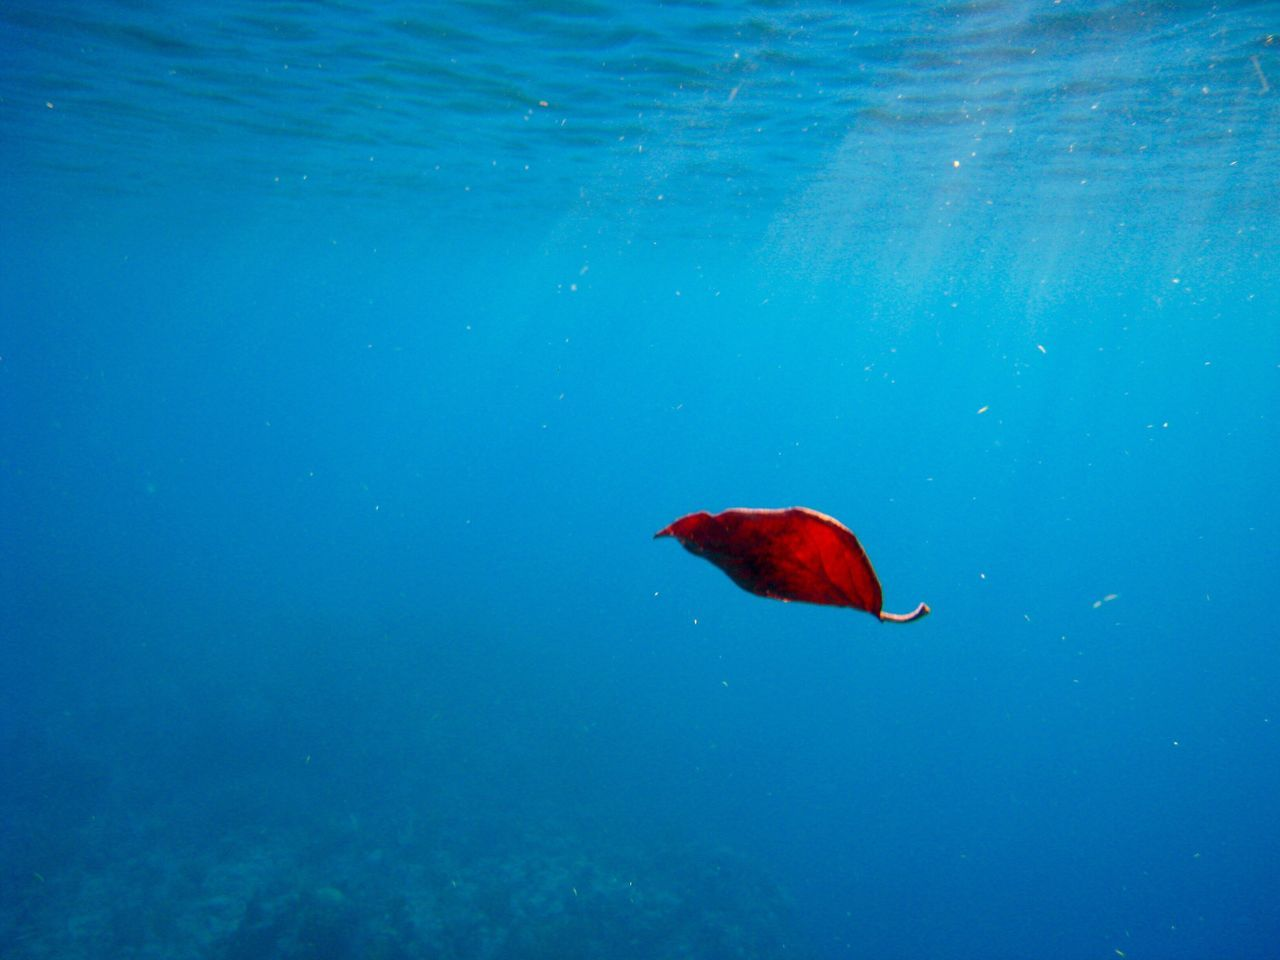 red, water, one animal, animal themes, blue, swimming, animals in the wild, sea life, nature, fish, no people, underwater, animal wildlife, beauty in nature, undersea, day, outdoors, close-up